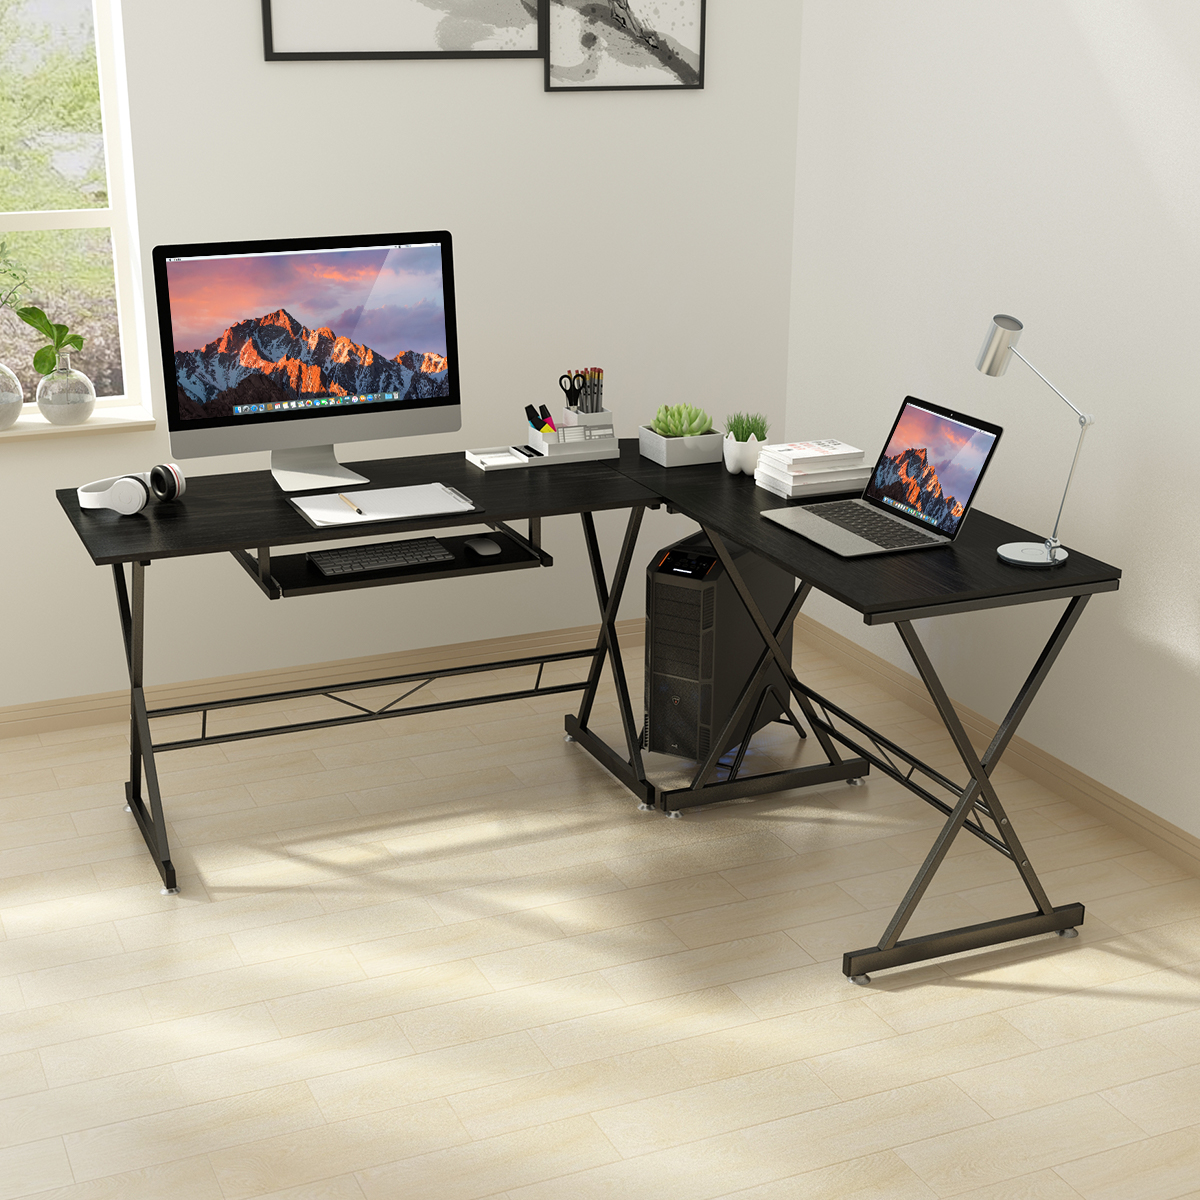 SLYPNOS L Shaped Computer Desk Corner Desk Glass Portable PC/PC Gaming  Table Workstation with Easy-Glide Keyboard Tray and Free-Standing CPU  Stand, ...